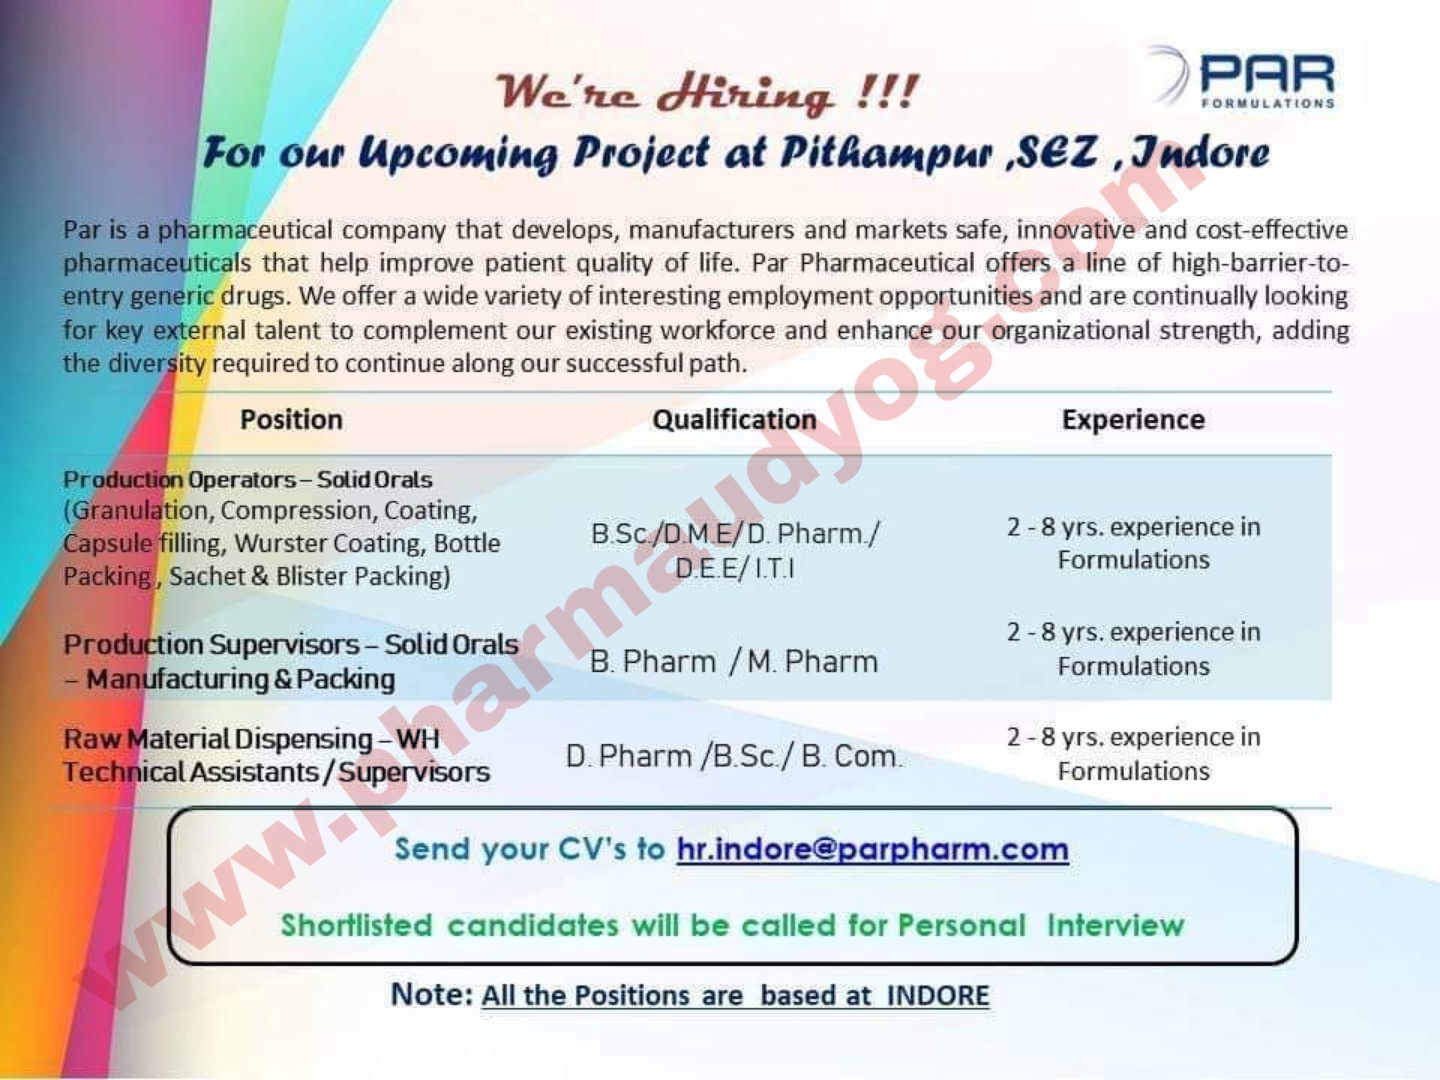 PAR formulations | Hiring for Pitampur new plant | Indore